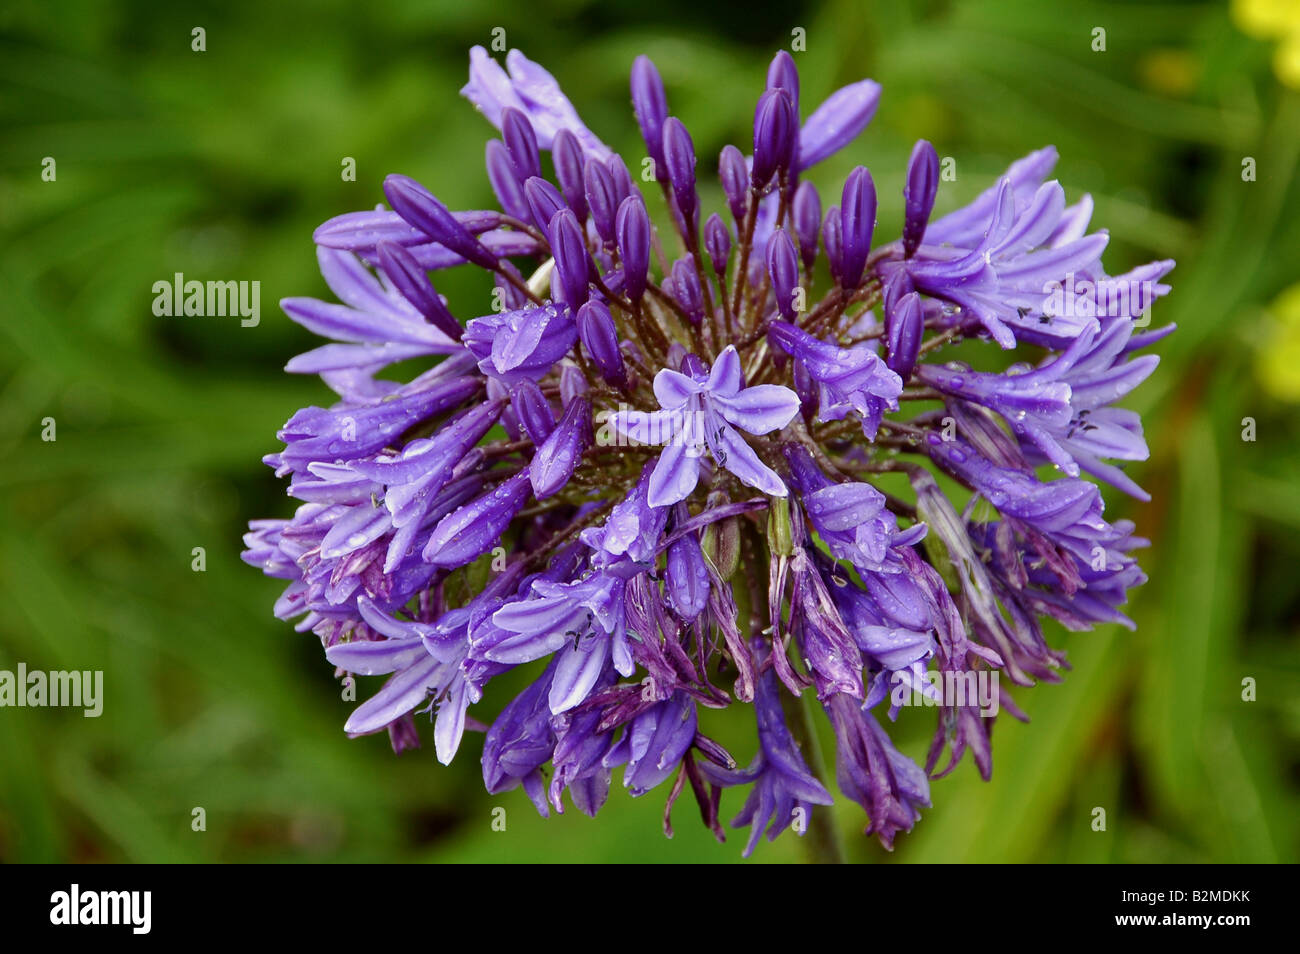 Single flower truss of Agapanthus which is quite resistant to heavy rainfall Herbaceous perennial quite hardy in - Stock Image